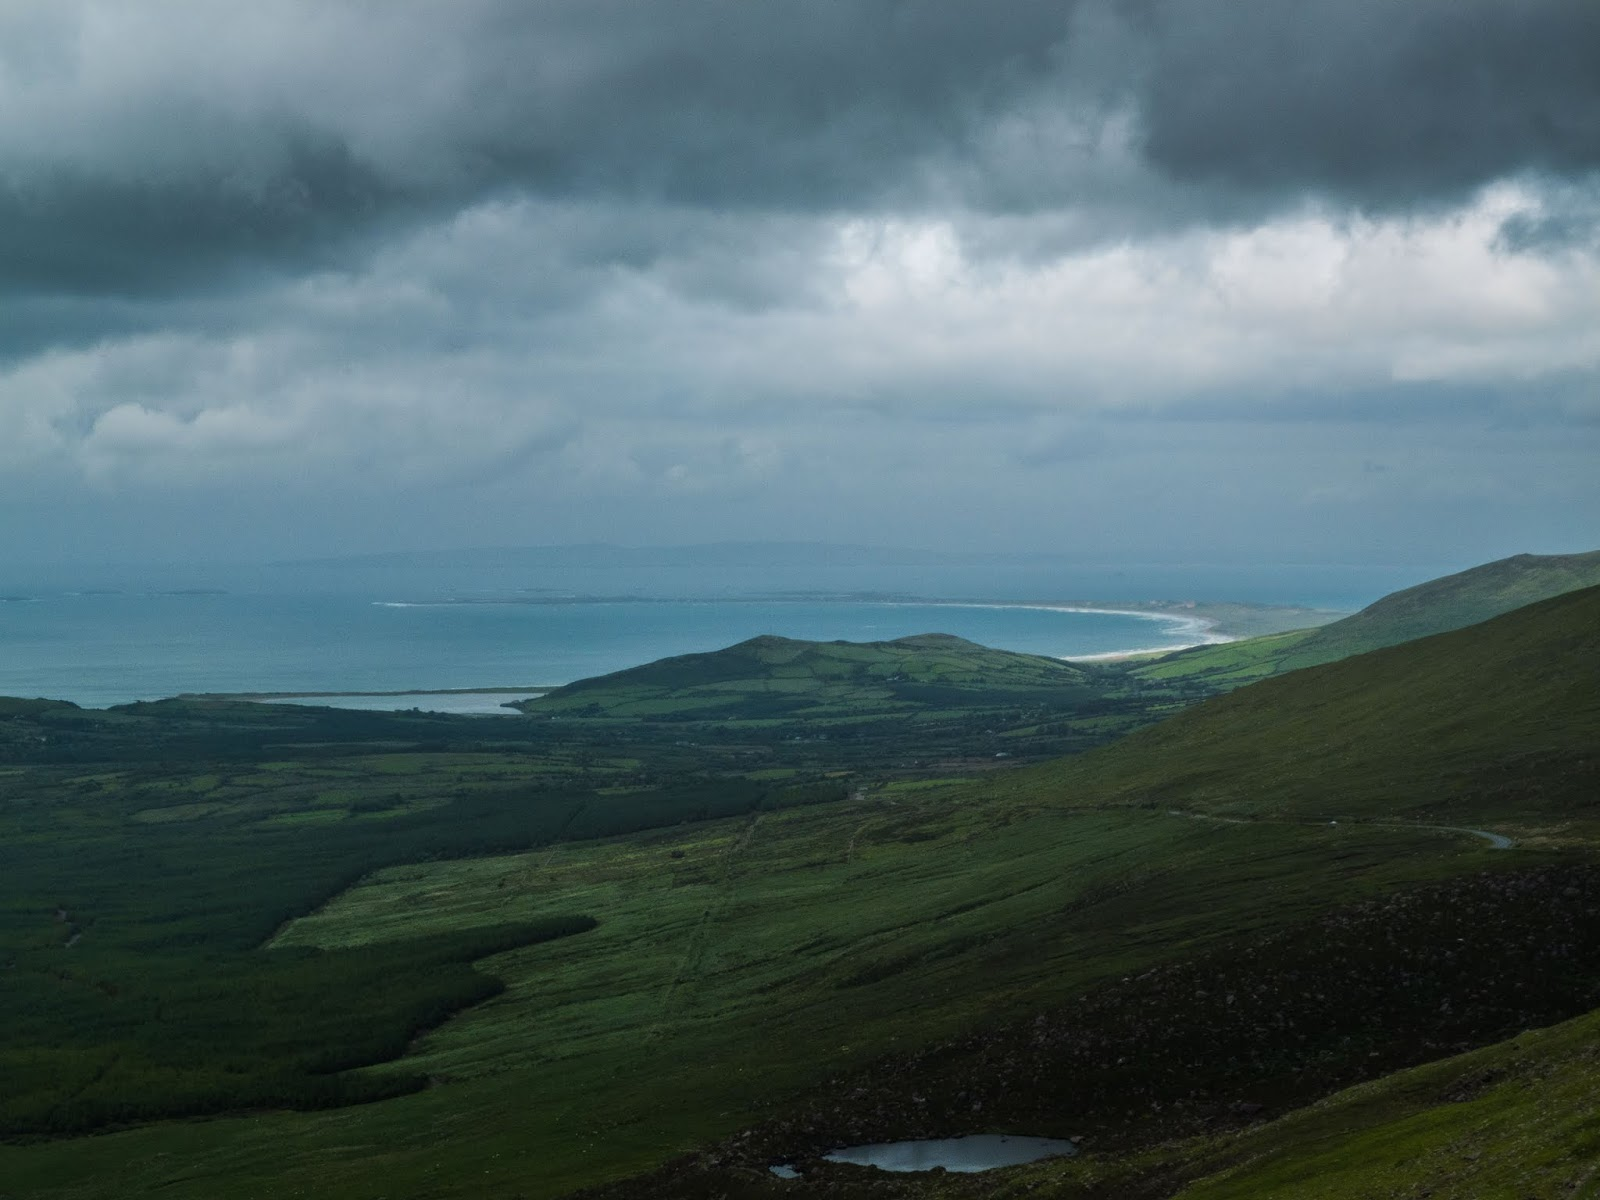 North Atlantic Ocean views from the Conor Pass in County Kerry.